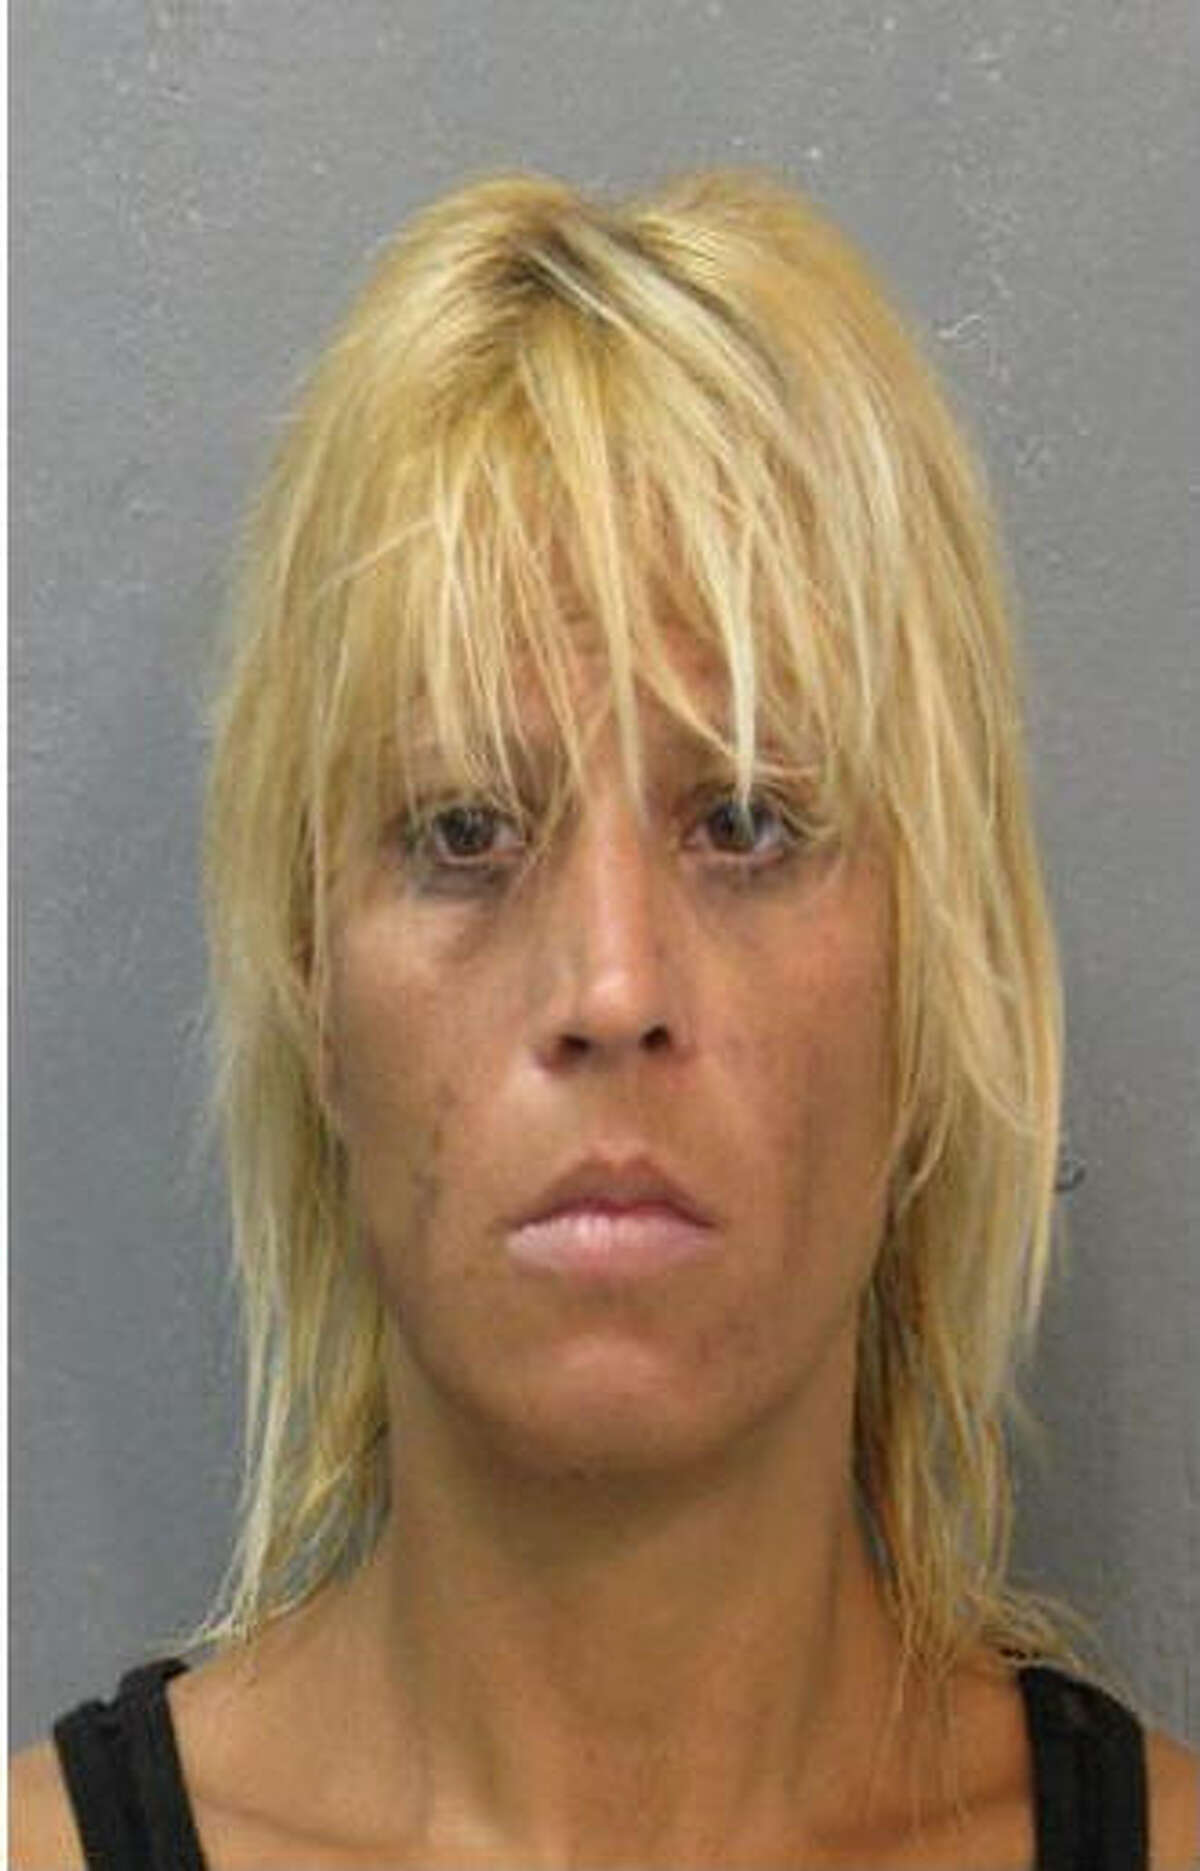 Jennifer Darnell was arrested Aug. 29 in an East Harris County prostitution sting.